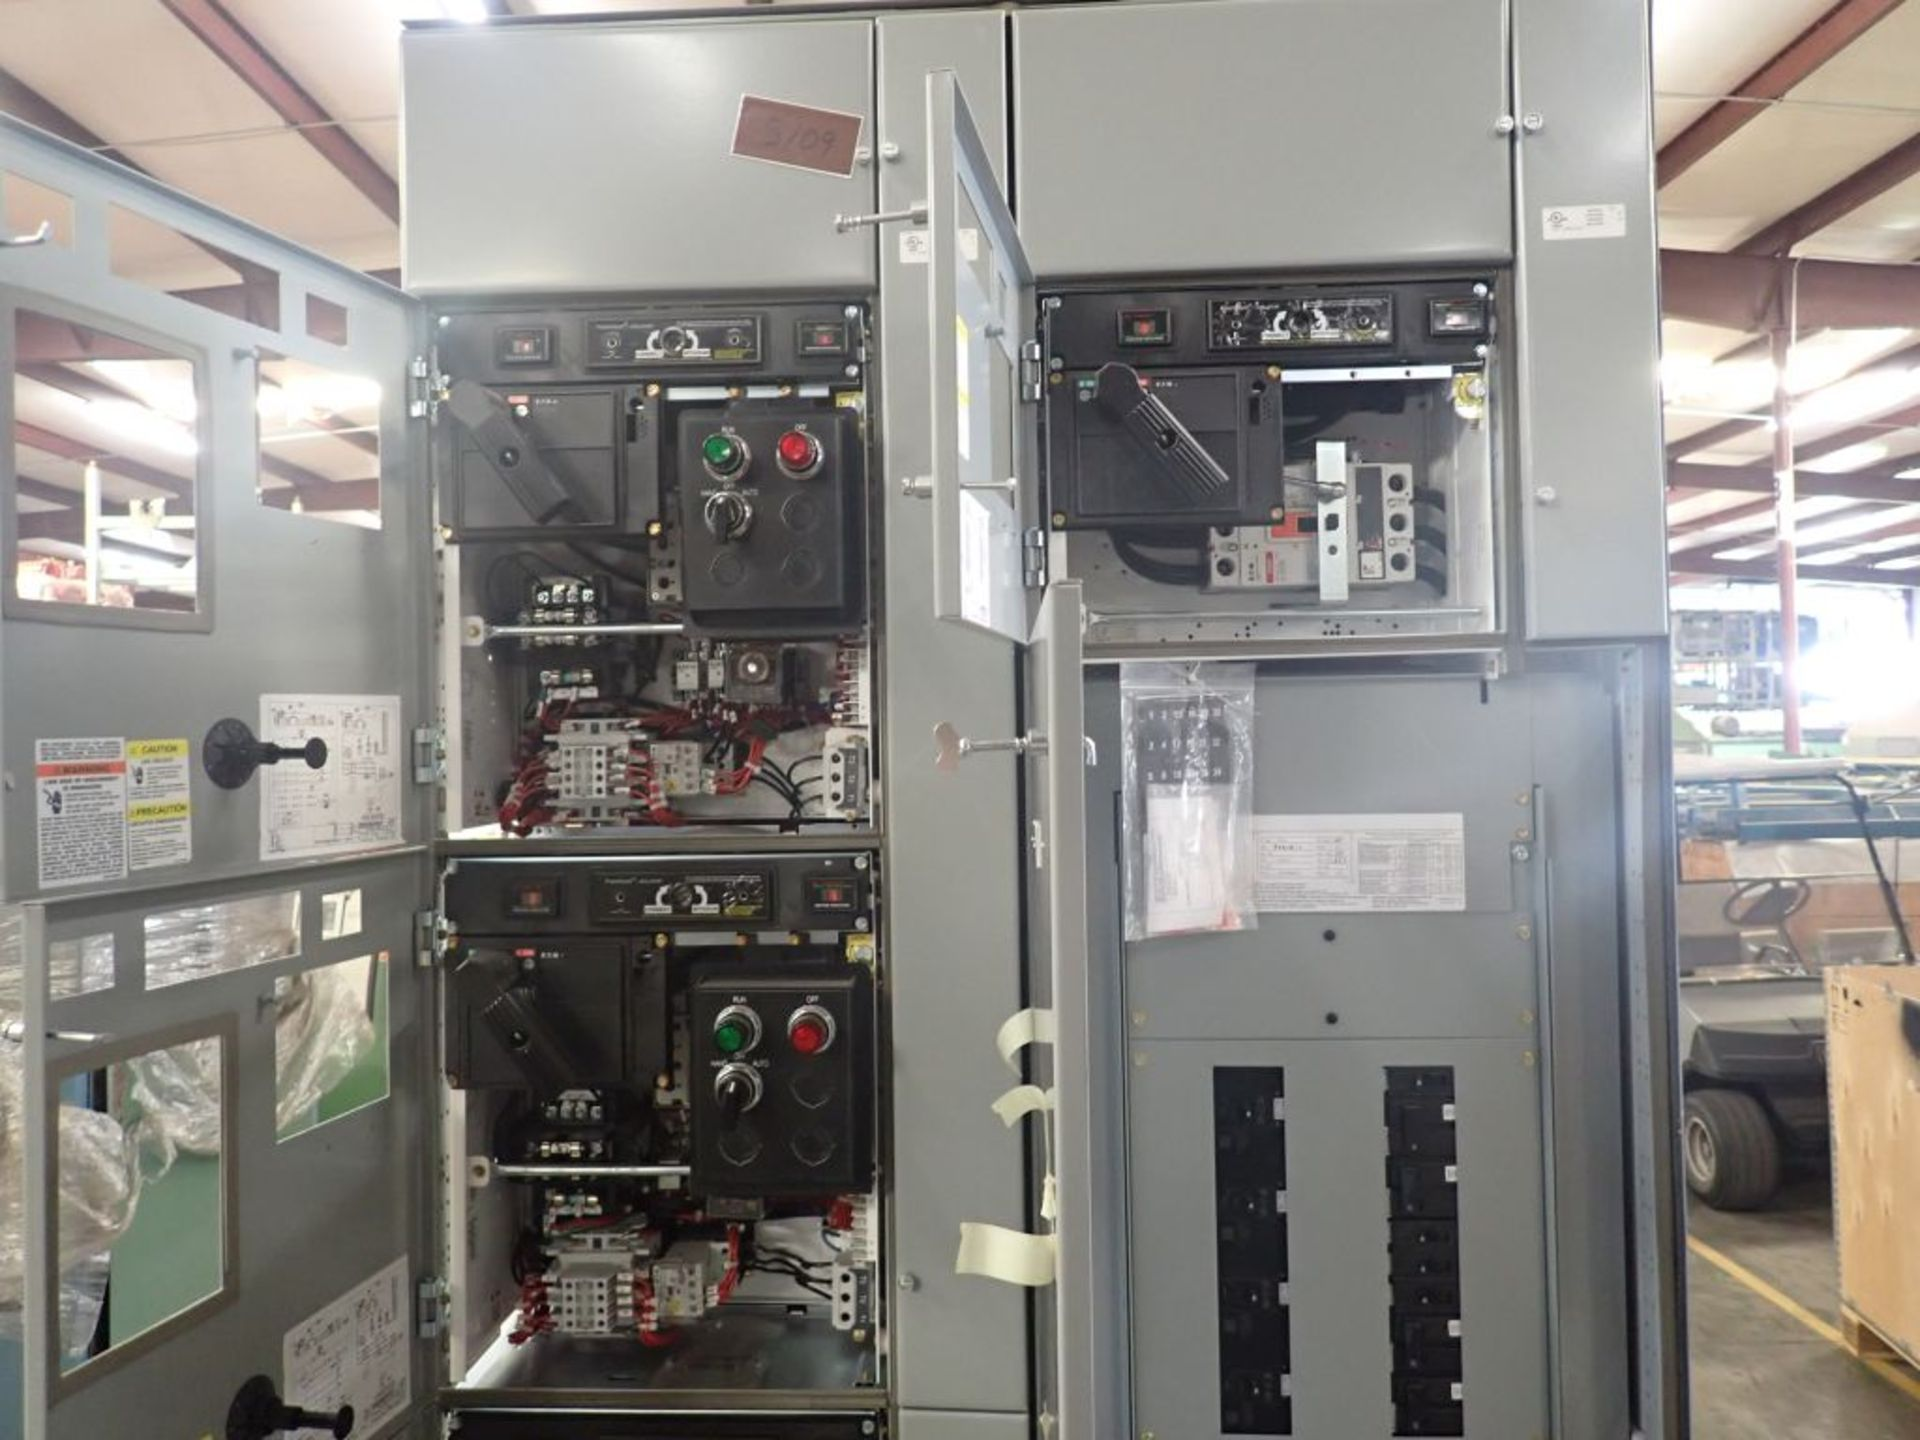 Eaton Freedom 2100 Series Motor Control Center   (2) F206-15A-10HP; (1) F206-30A-10HP; (1) FDRB- - Image 15 of 61